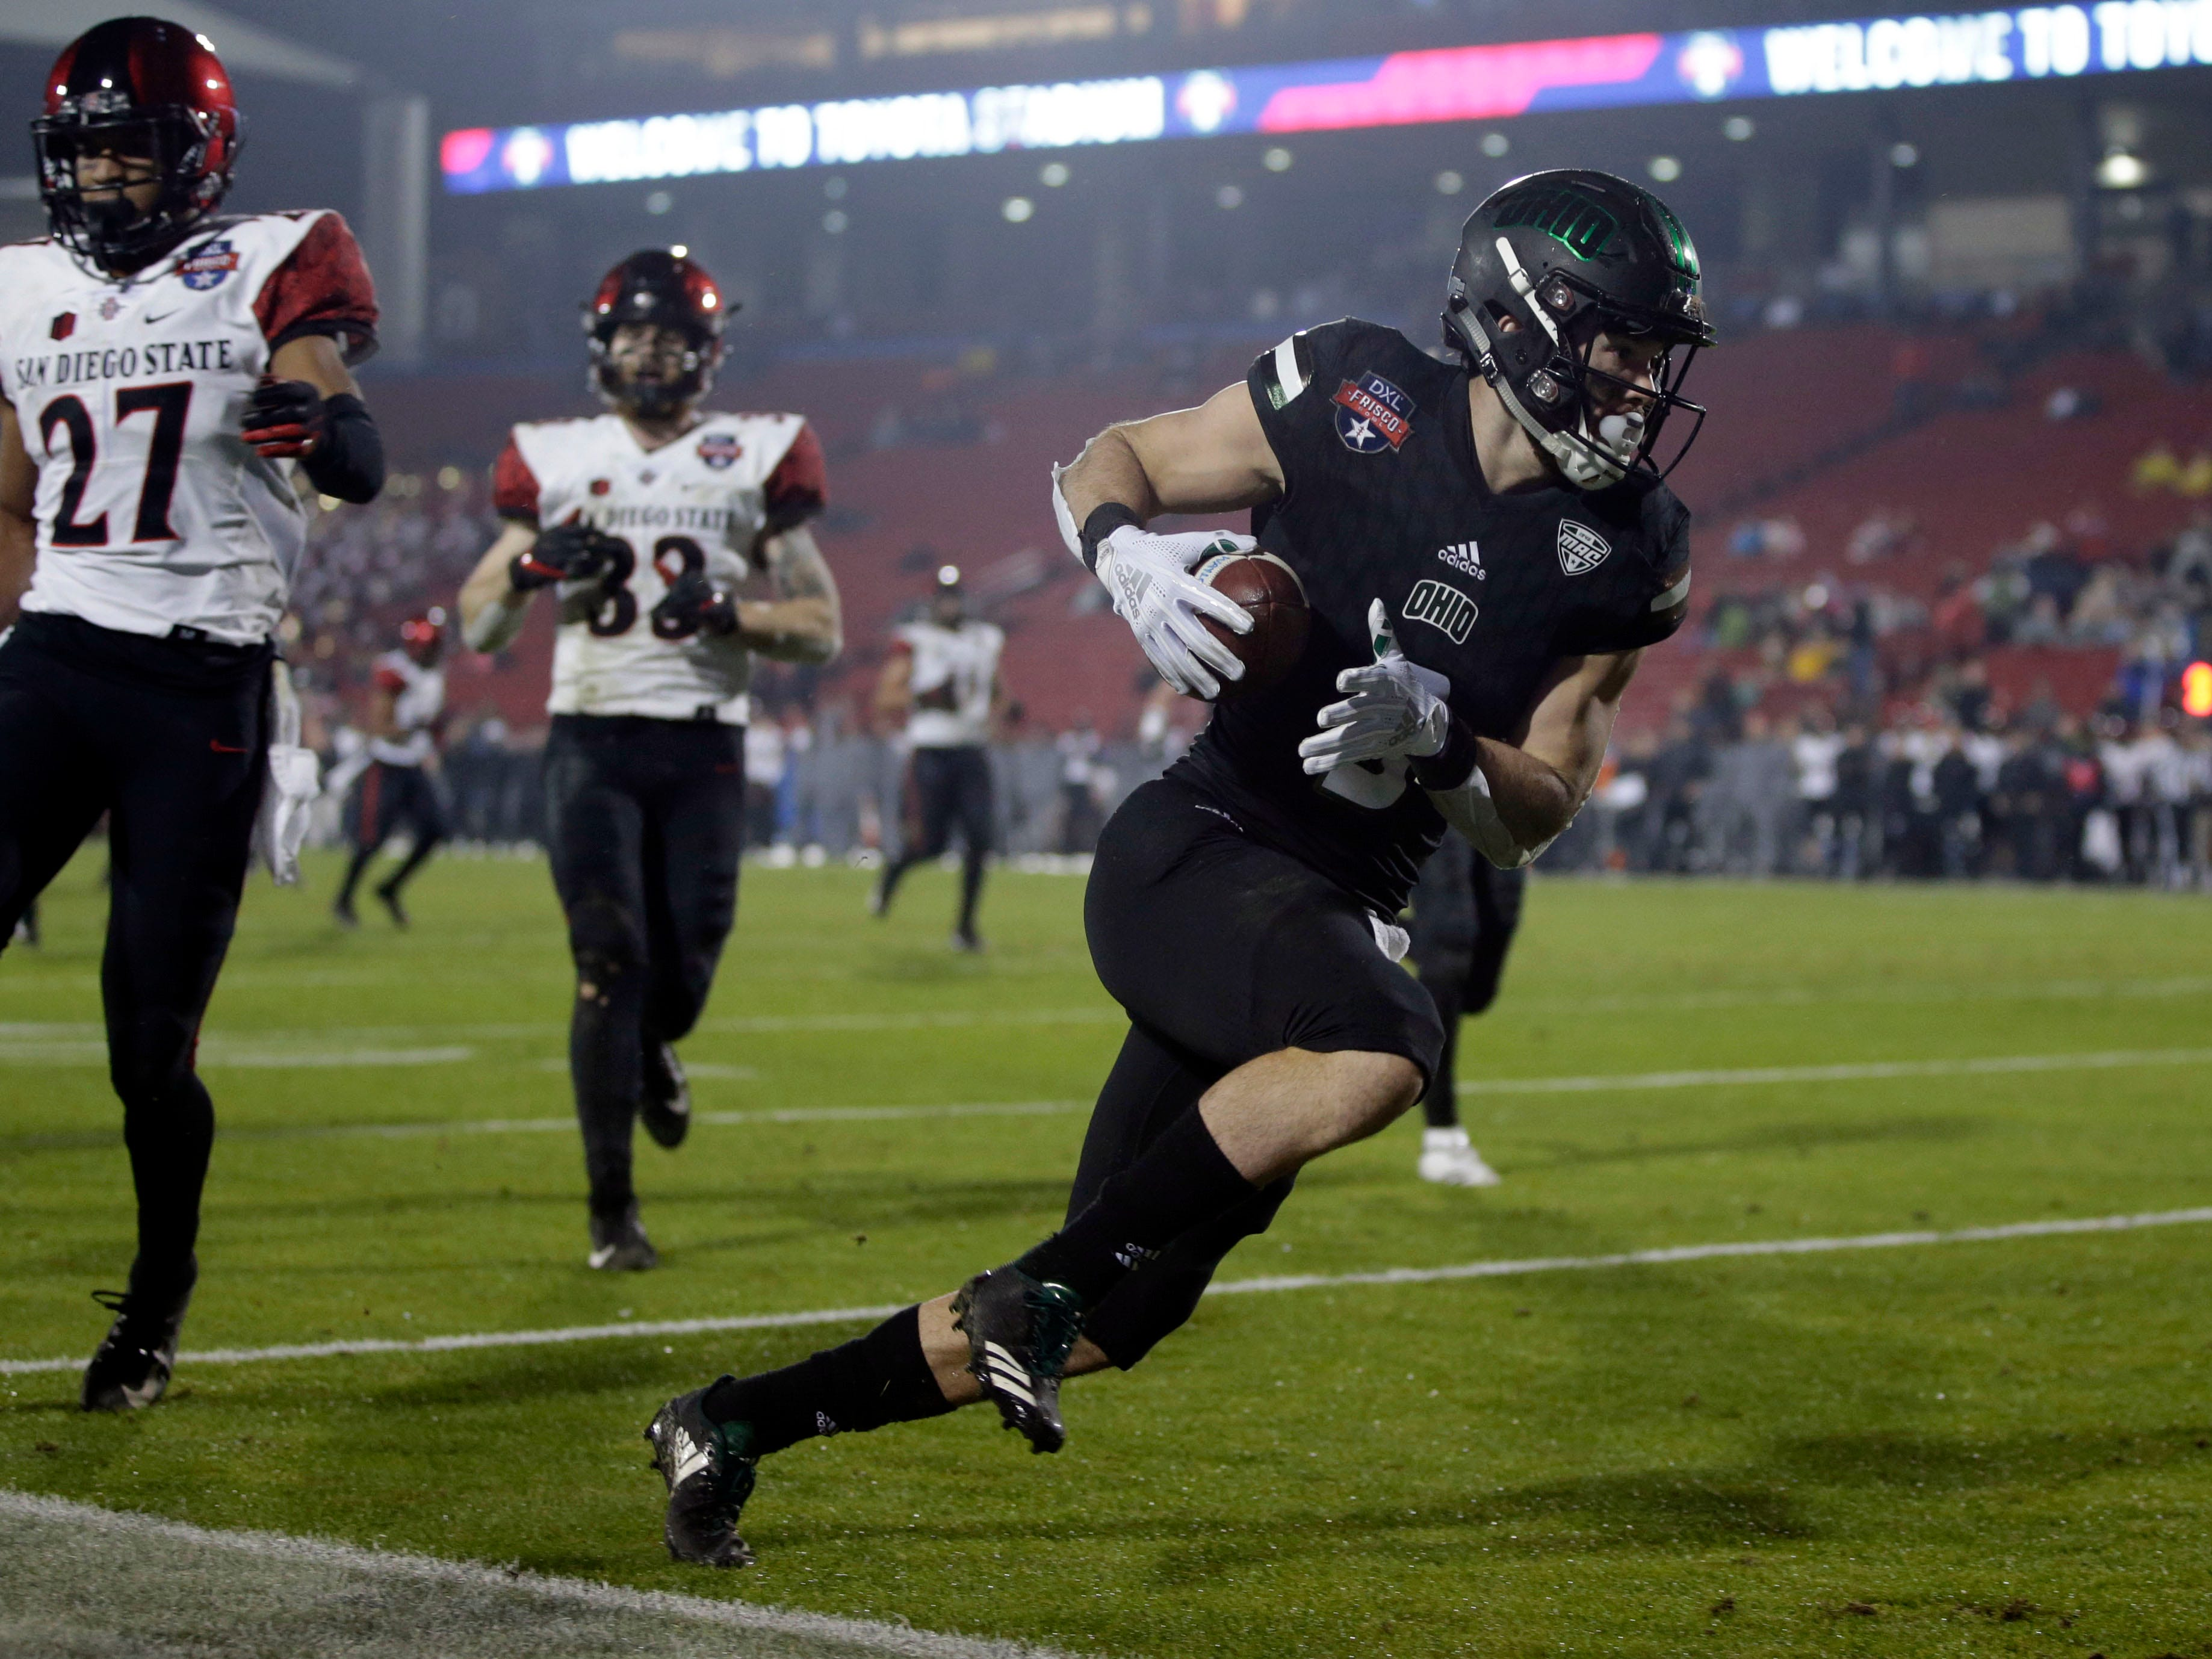 Ohio wide receiver Andrew Meyer scores a touchdown after catching a pass in the fourth quarter against San Diego State in the Frisco Bowl at Toyota Stadium.